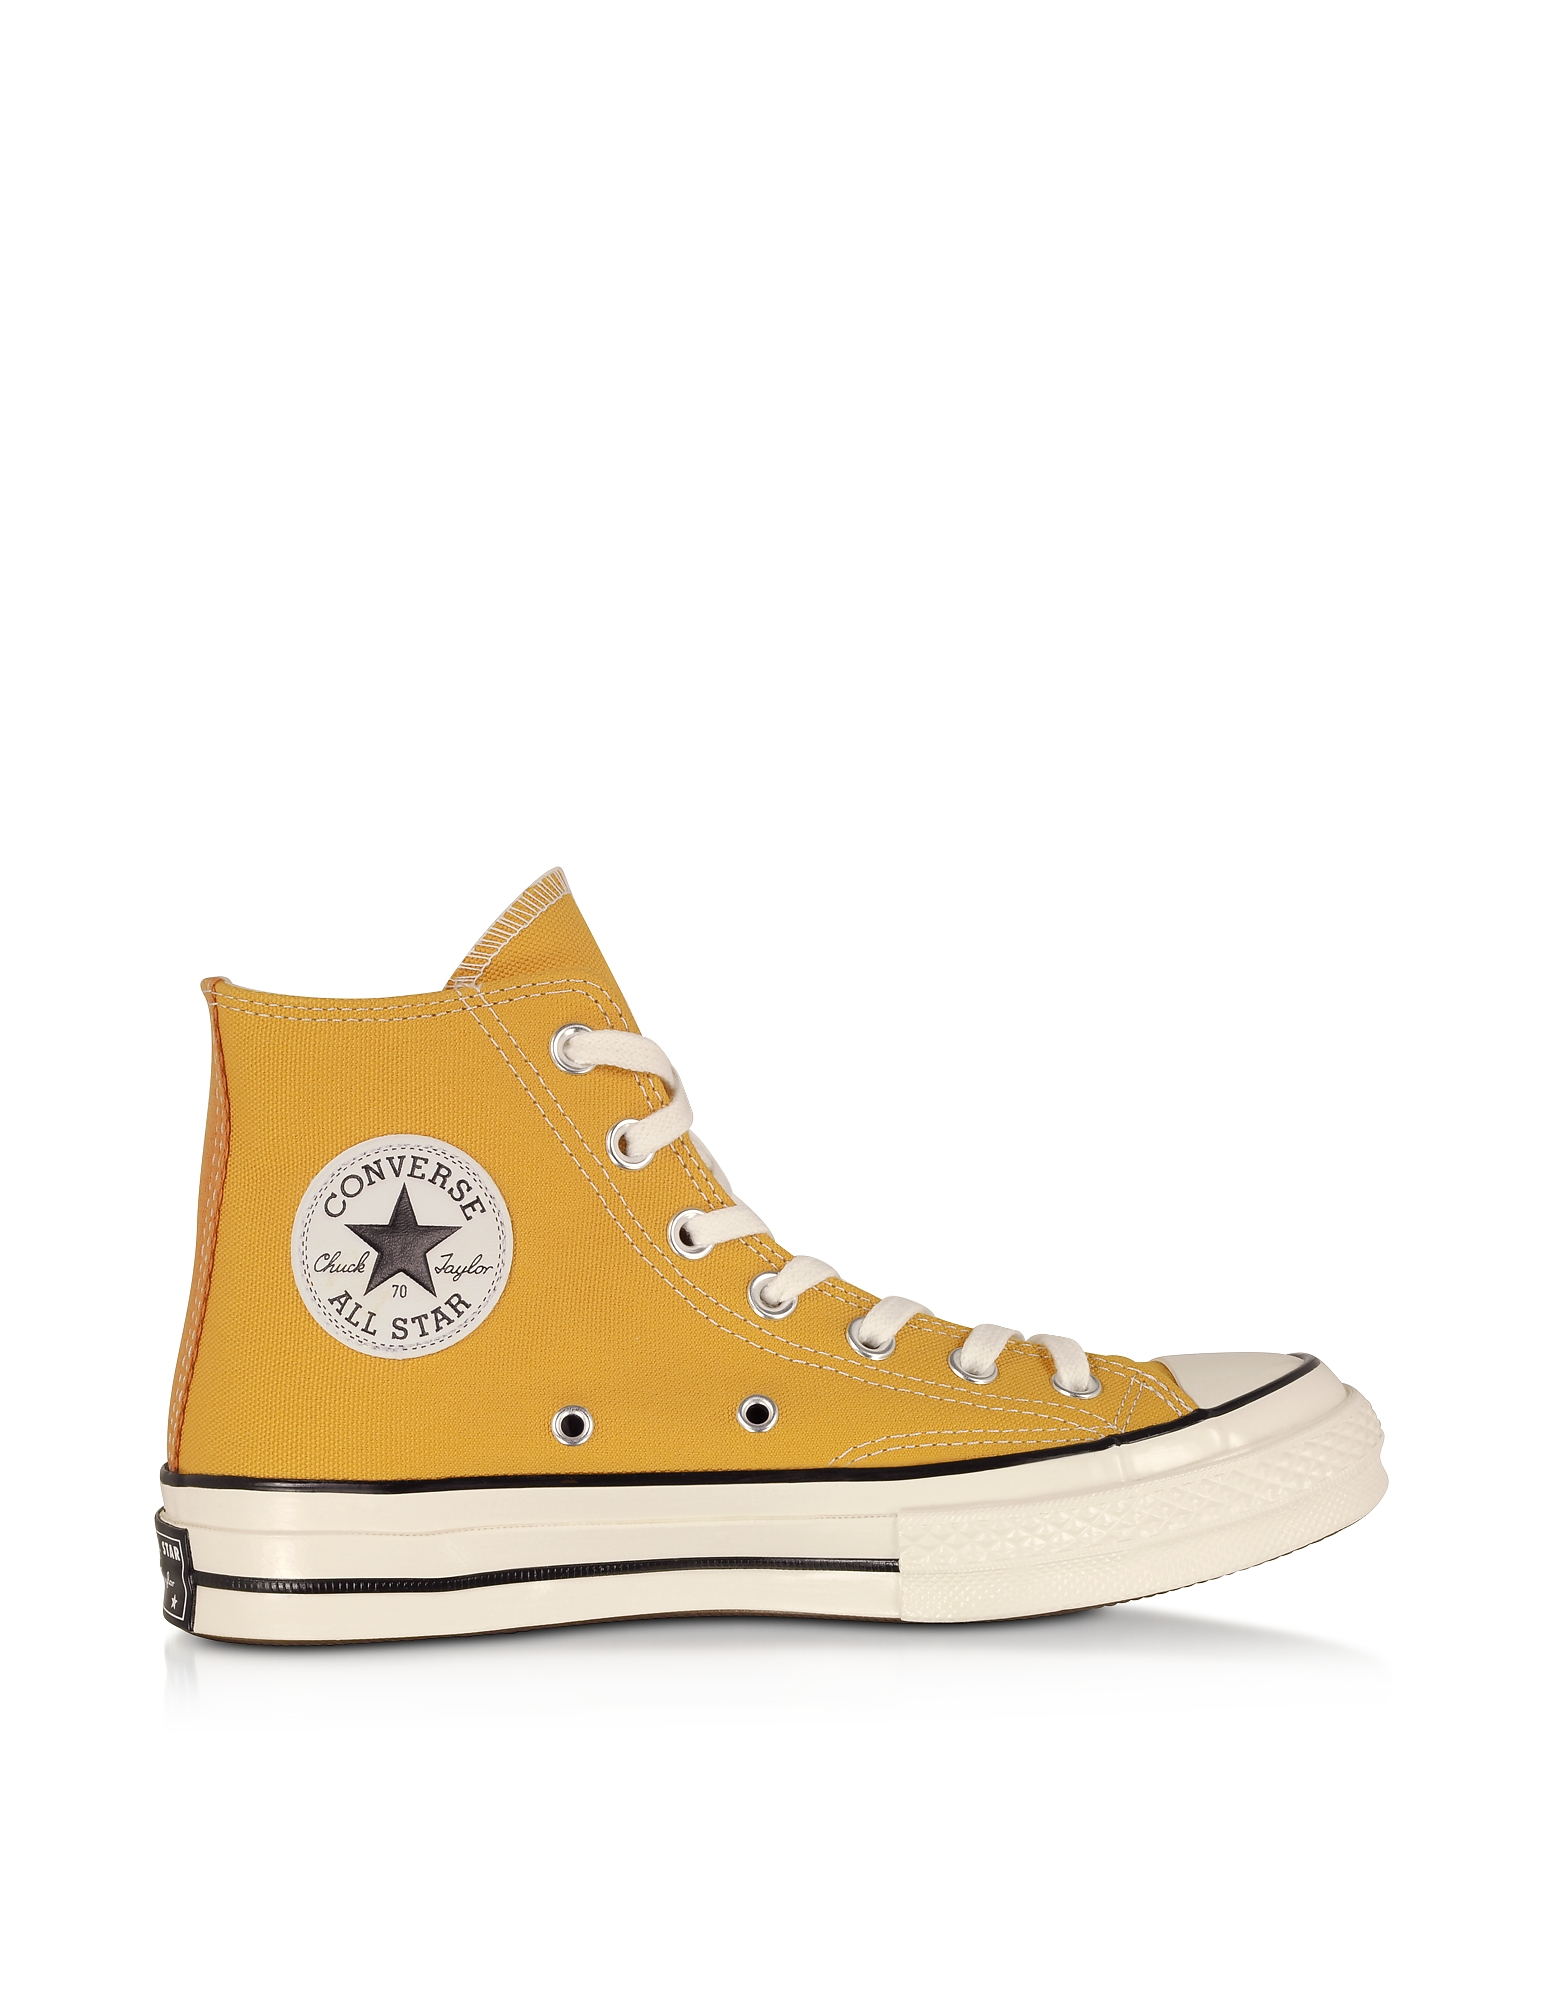 Converse Limited Edition Designer Shoes, Sunflower Chuck 70 w/ Vintage Canvas High Top